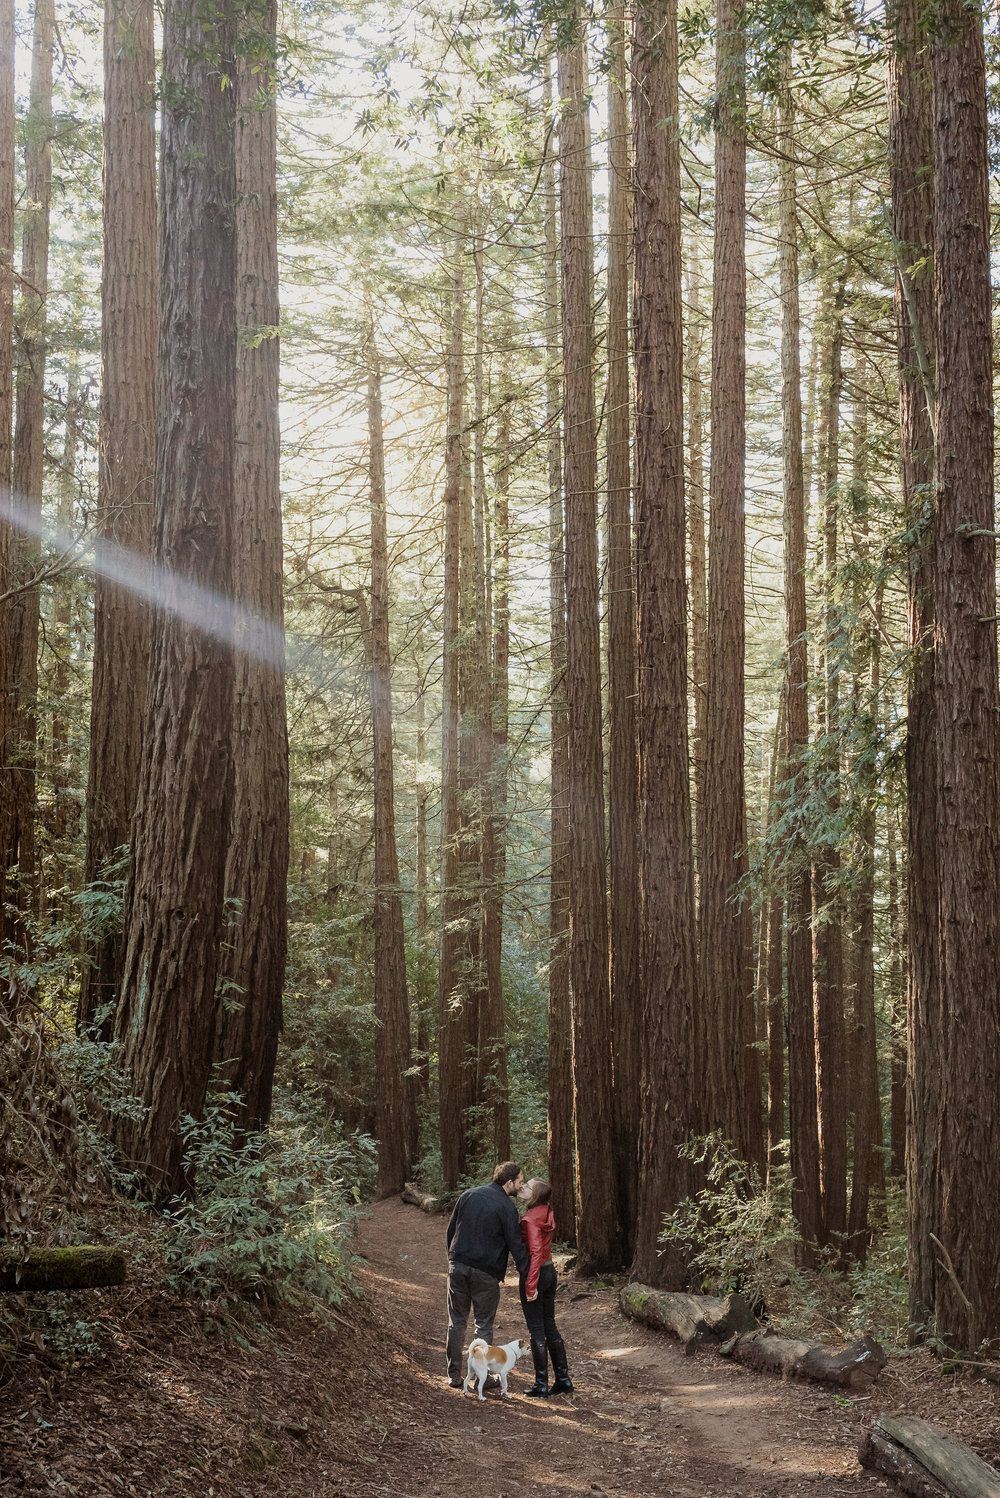 oakland-joaquin-miller-park-redwood-grove-engagement-session-vivianchen-111.jpg